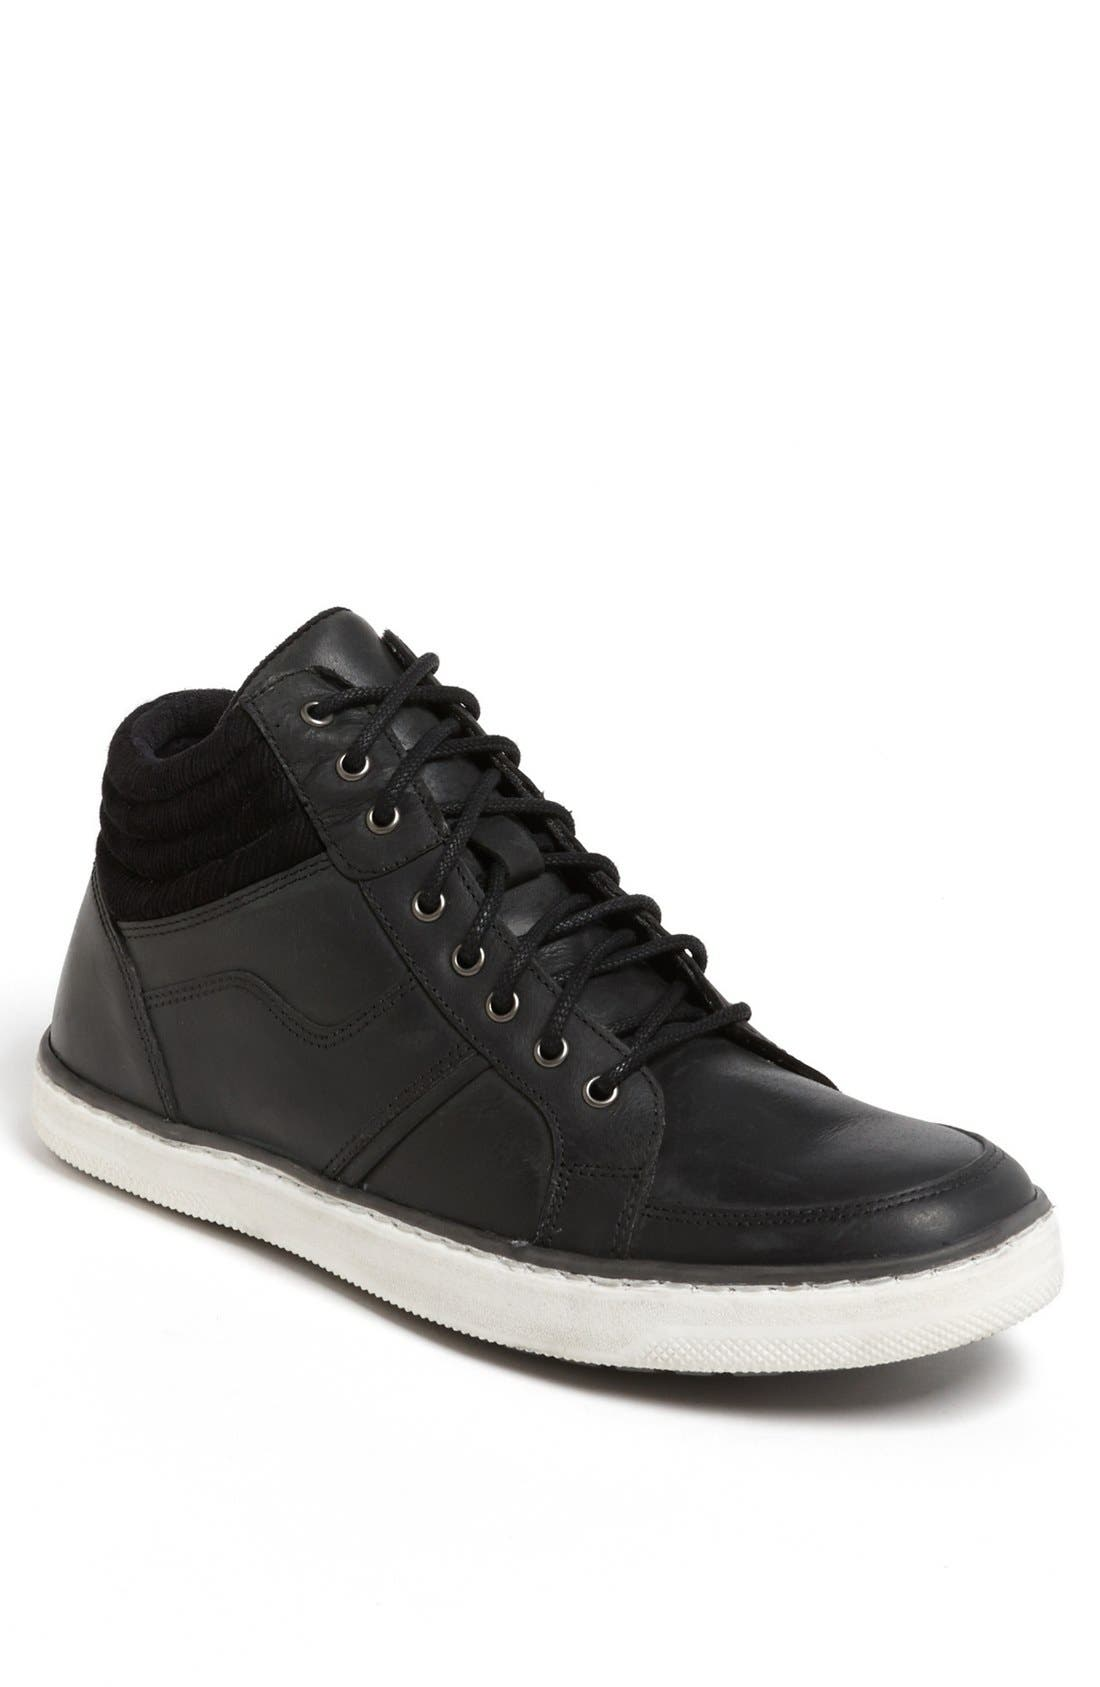 Main Image - Kenneth Cole Reaction 'Mir-Acle' Sneaker